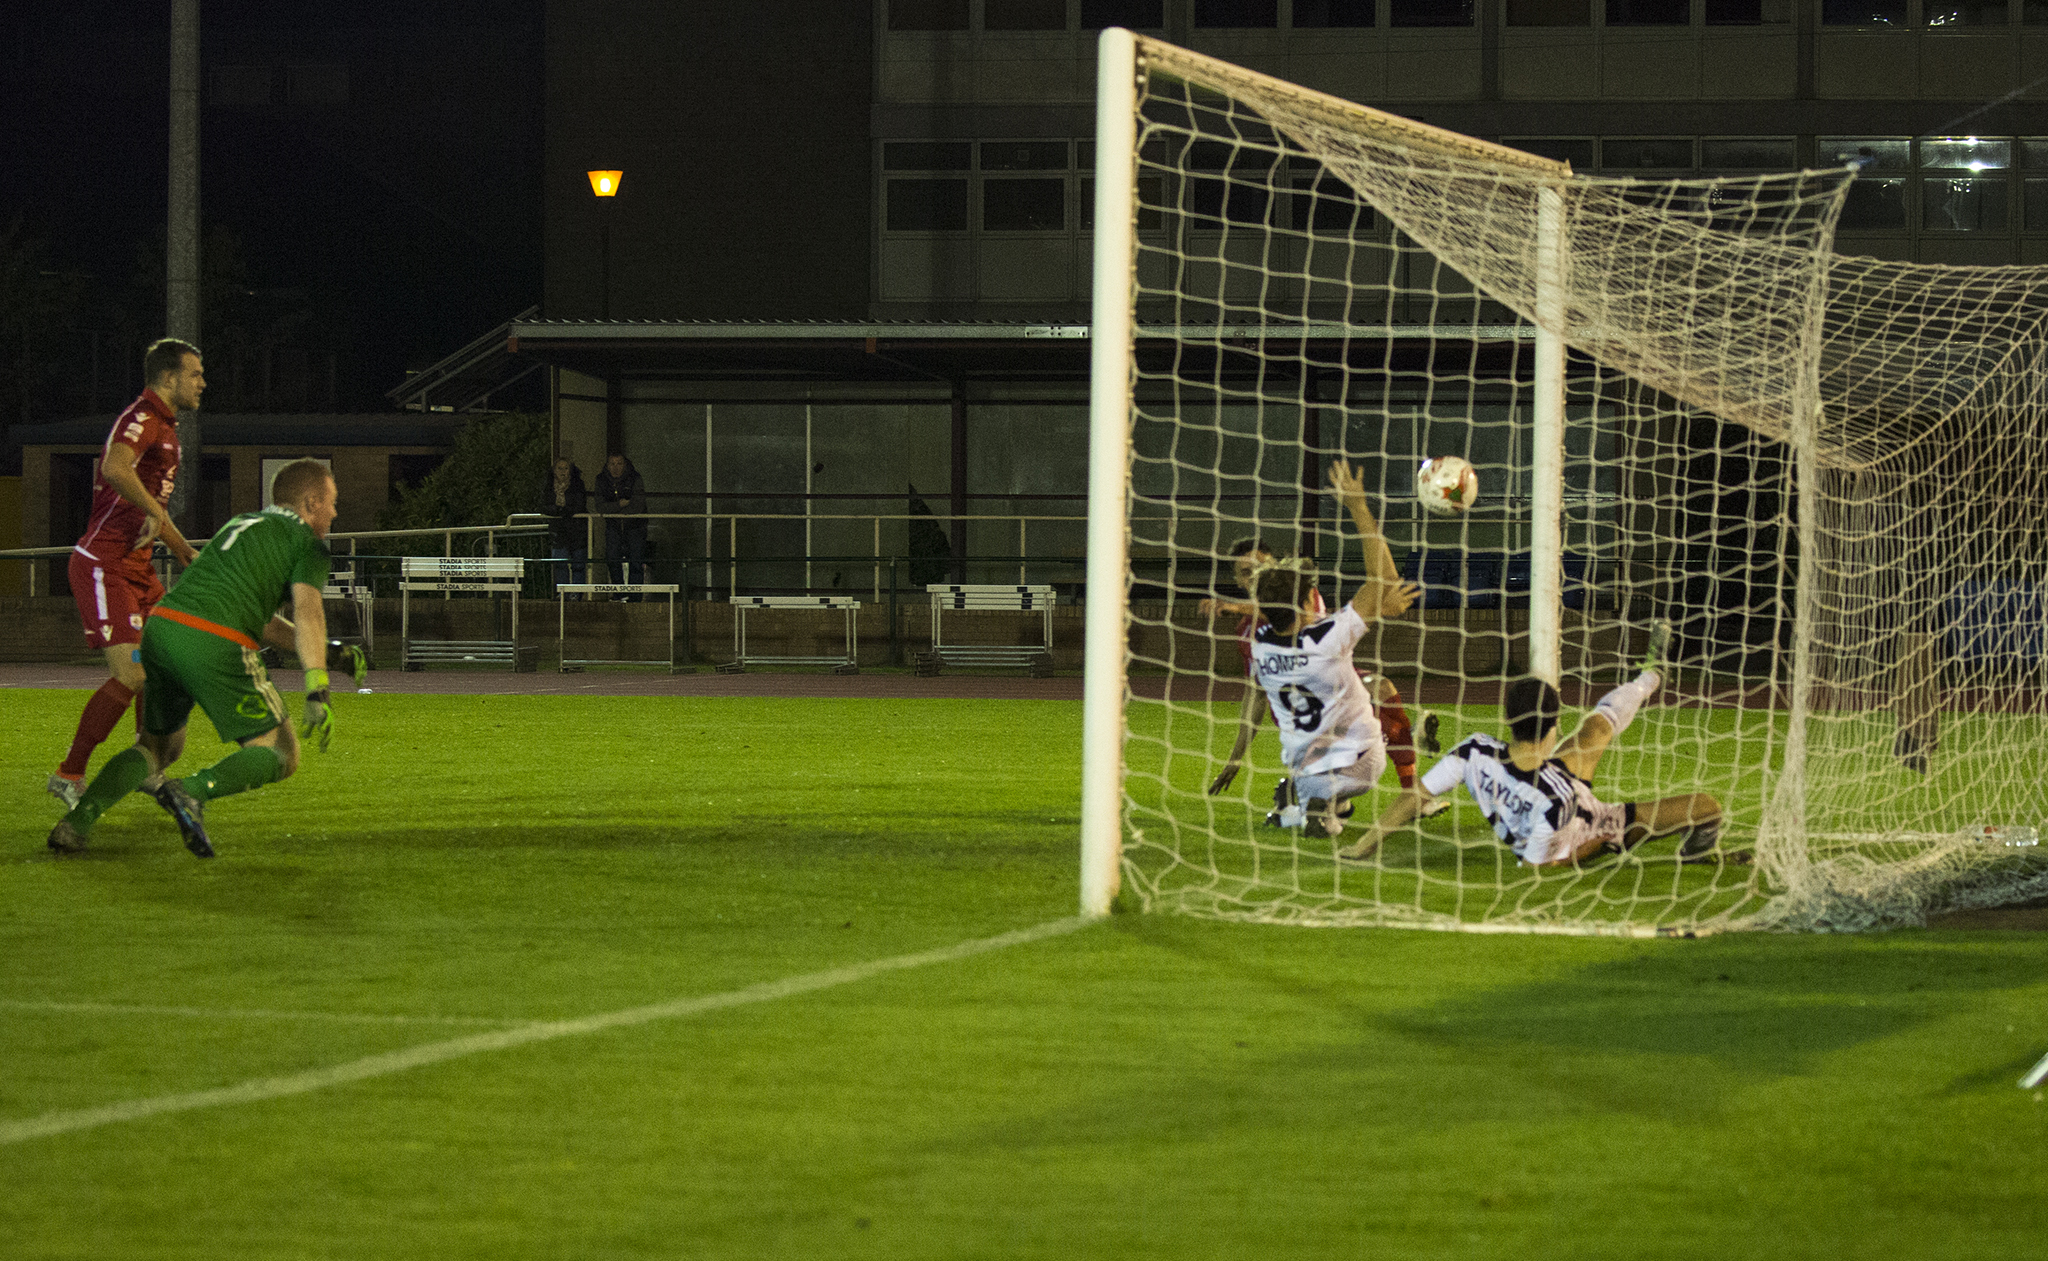 Nathan Woolfe scores from close range for The Nomads - © NCM Media